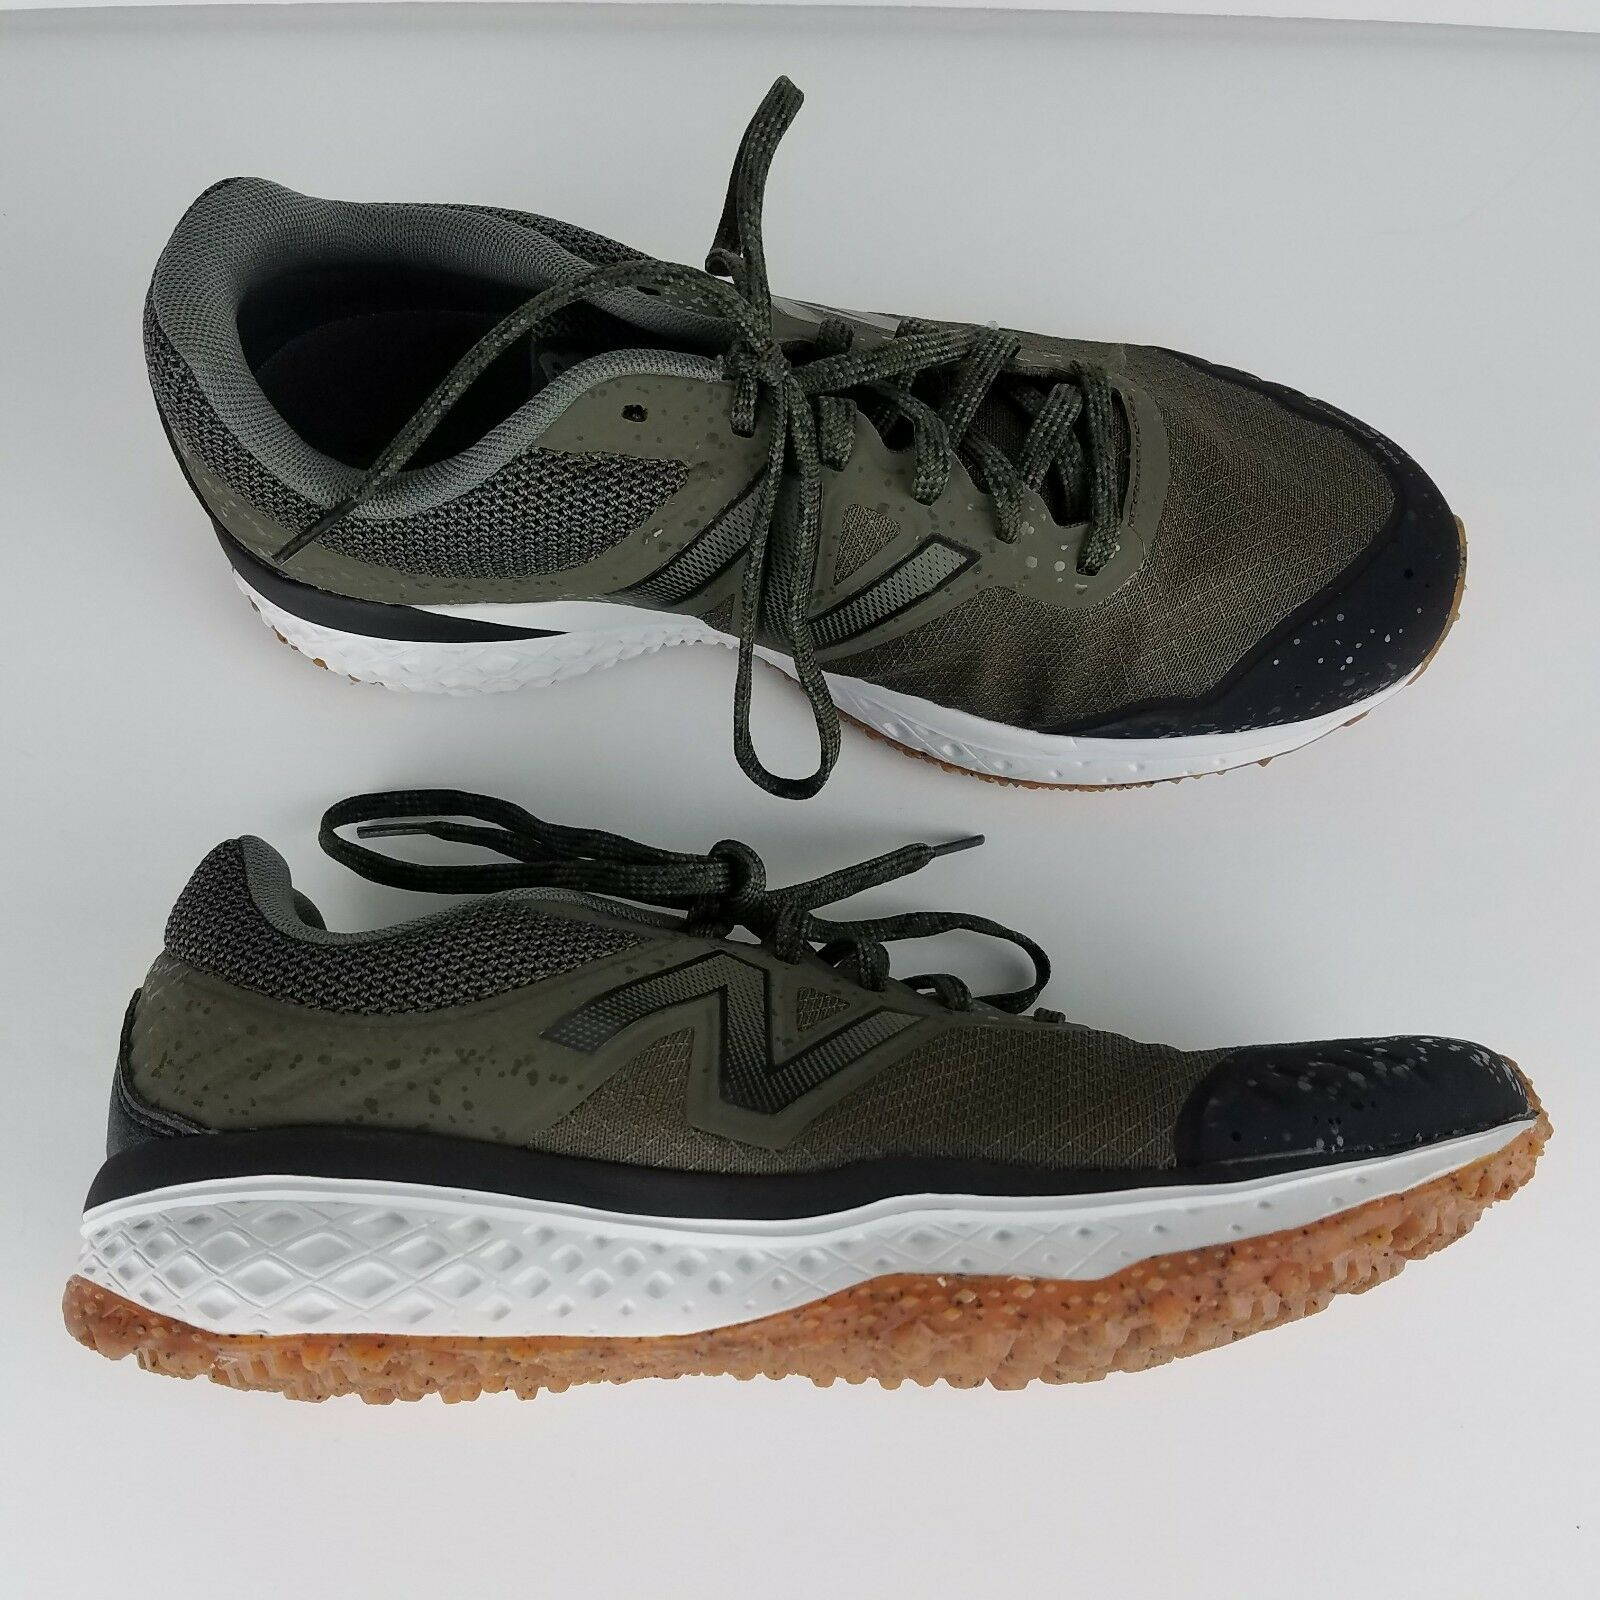 NEW Men's New Balance 620v2 Trail Running XWide shoes (4E) MT620RS2 Size 8